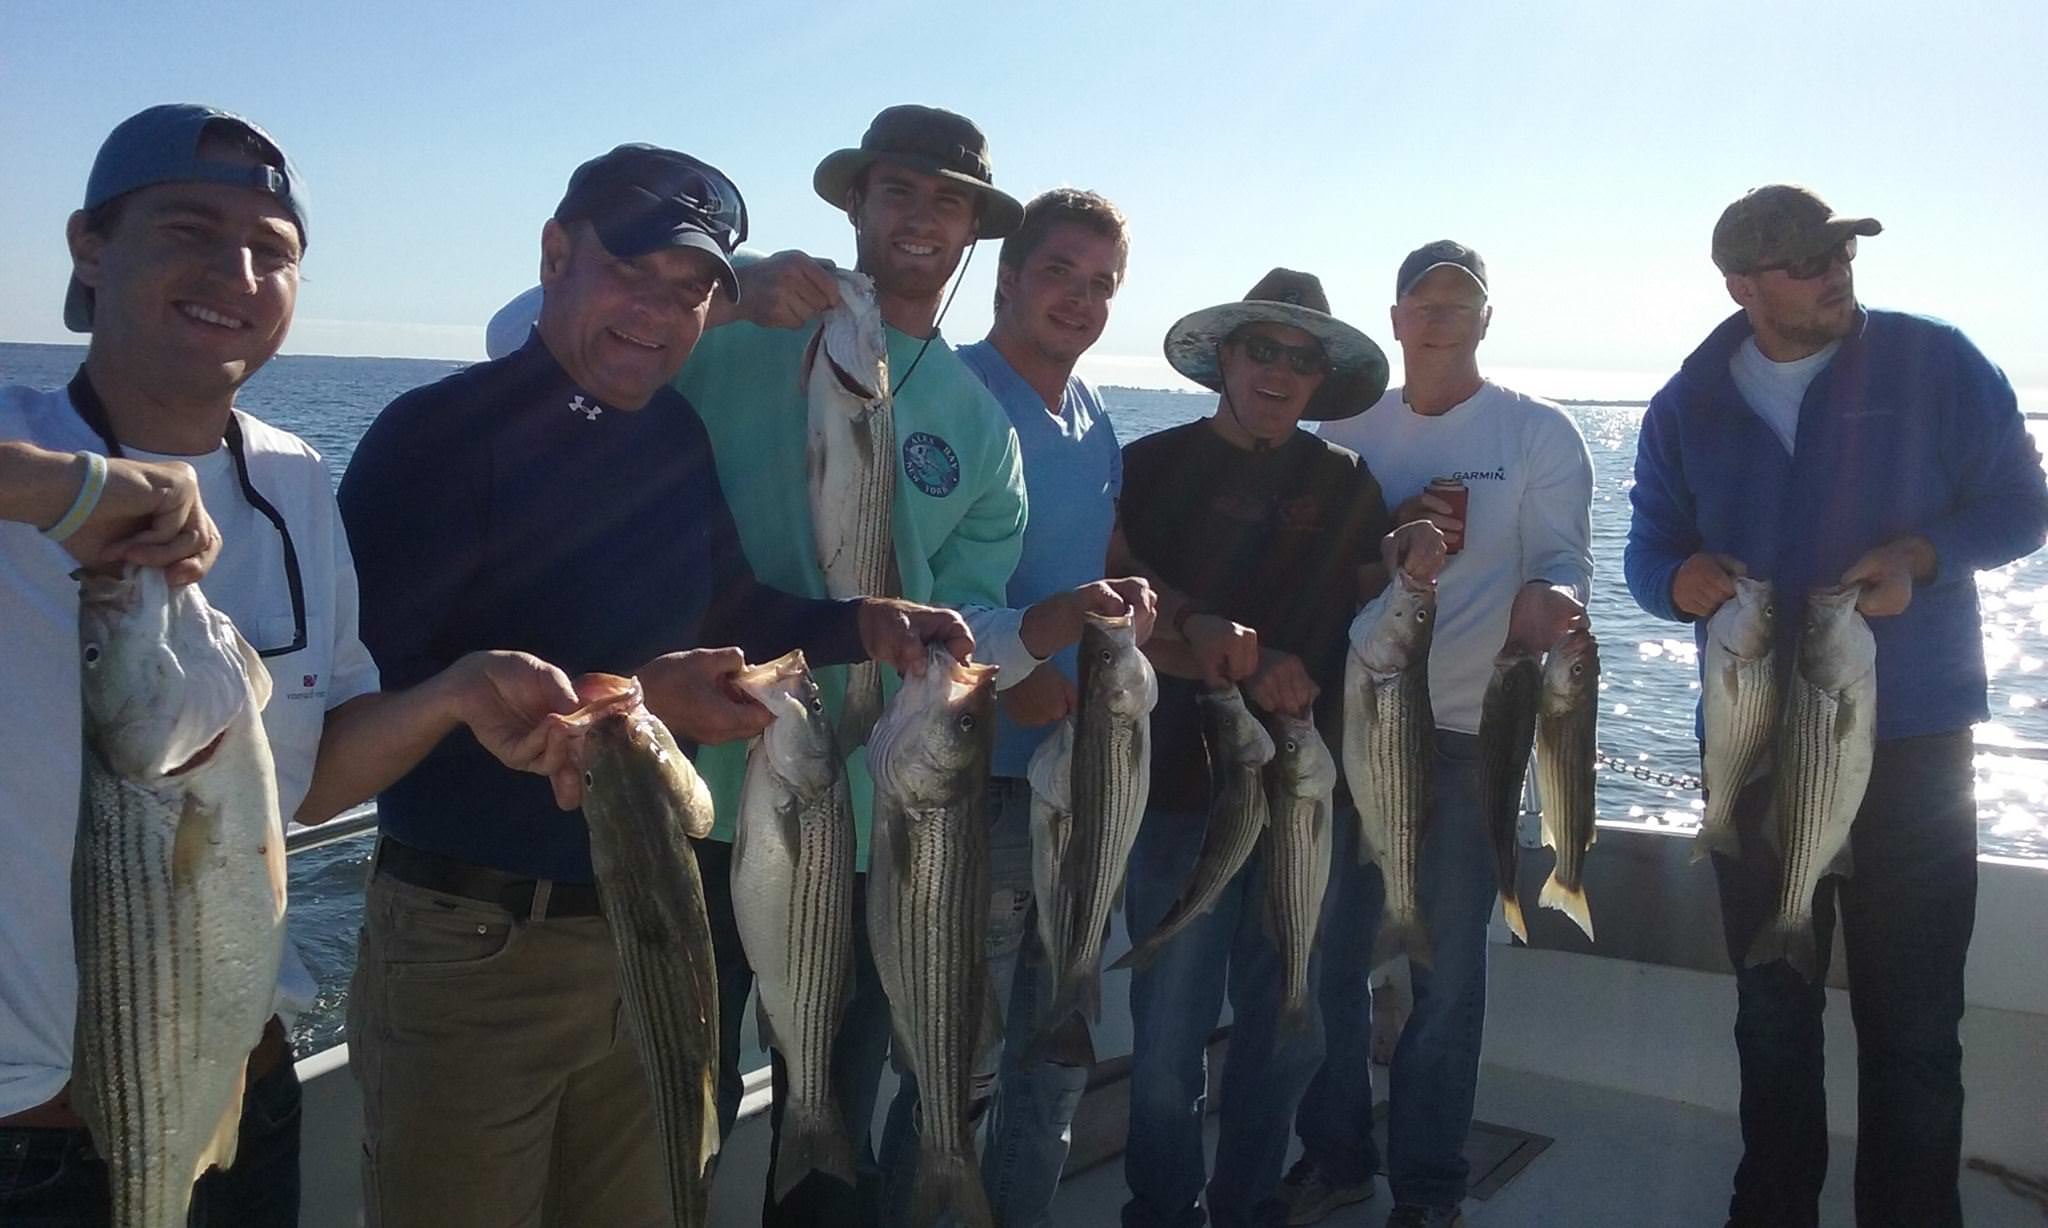 Chesapeake Bay Maryland Rockfish!